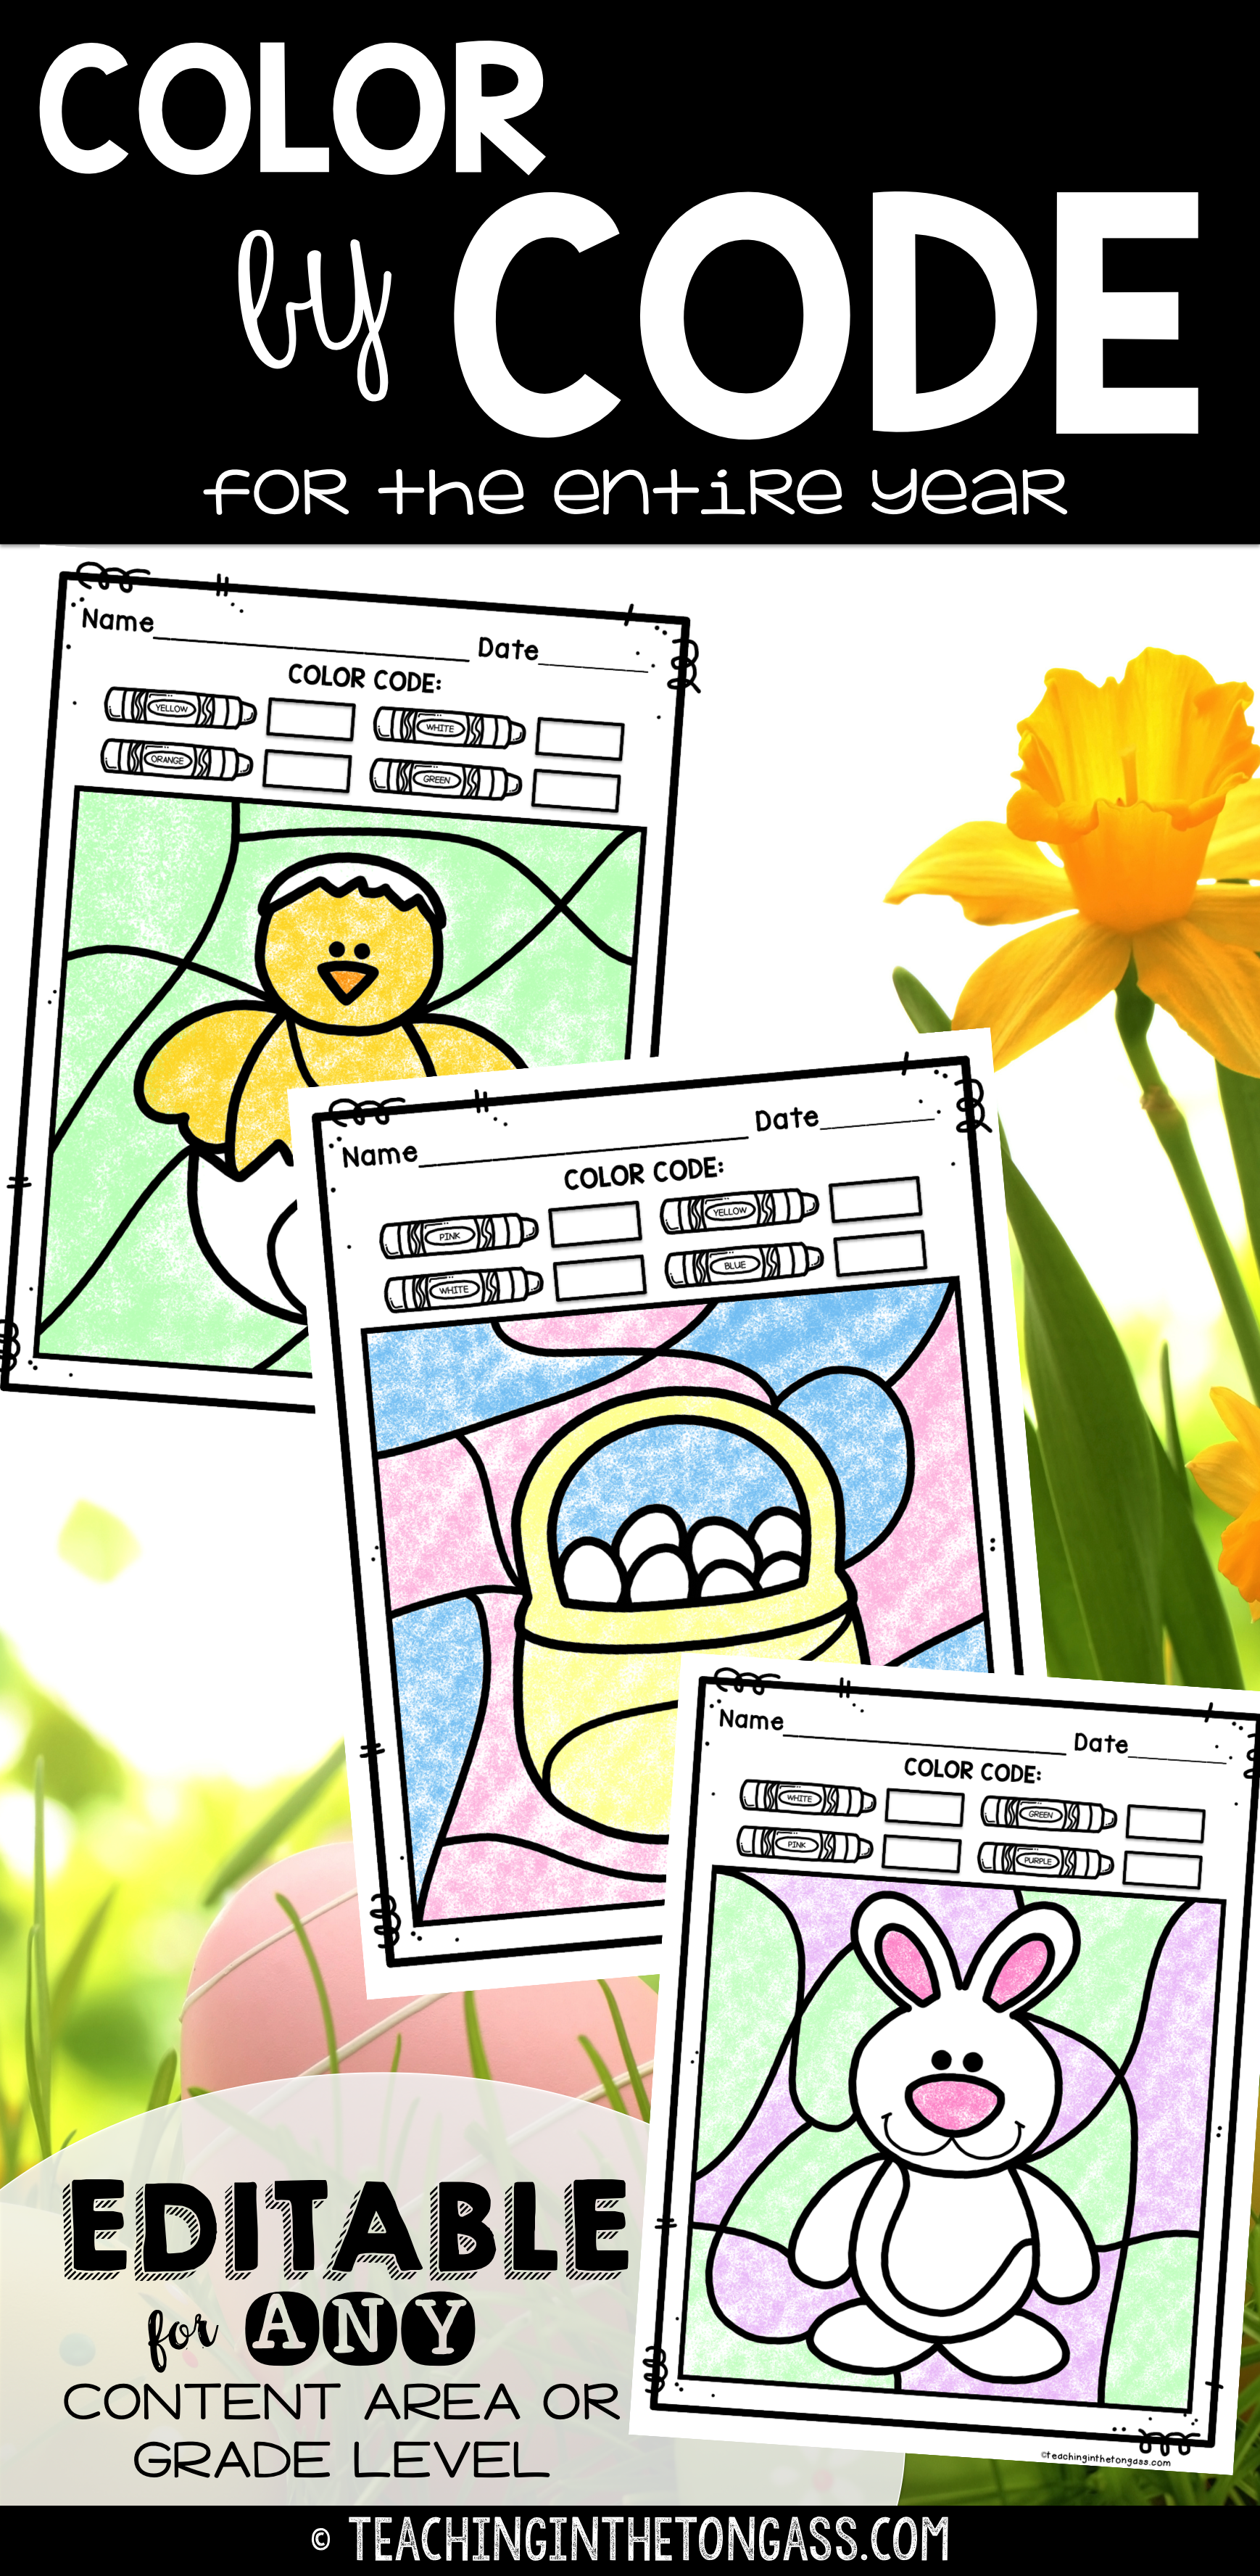 Spring coloring pages color by number - Editable Color By Code Bundle Great End Of The Year Activities Spring Coloring Pagescolor By Numbersspring